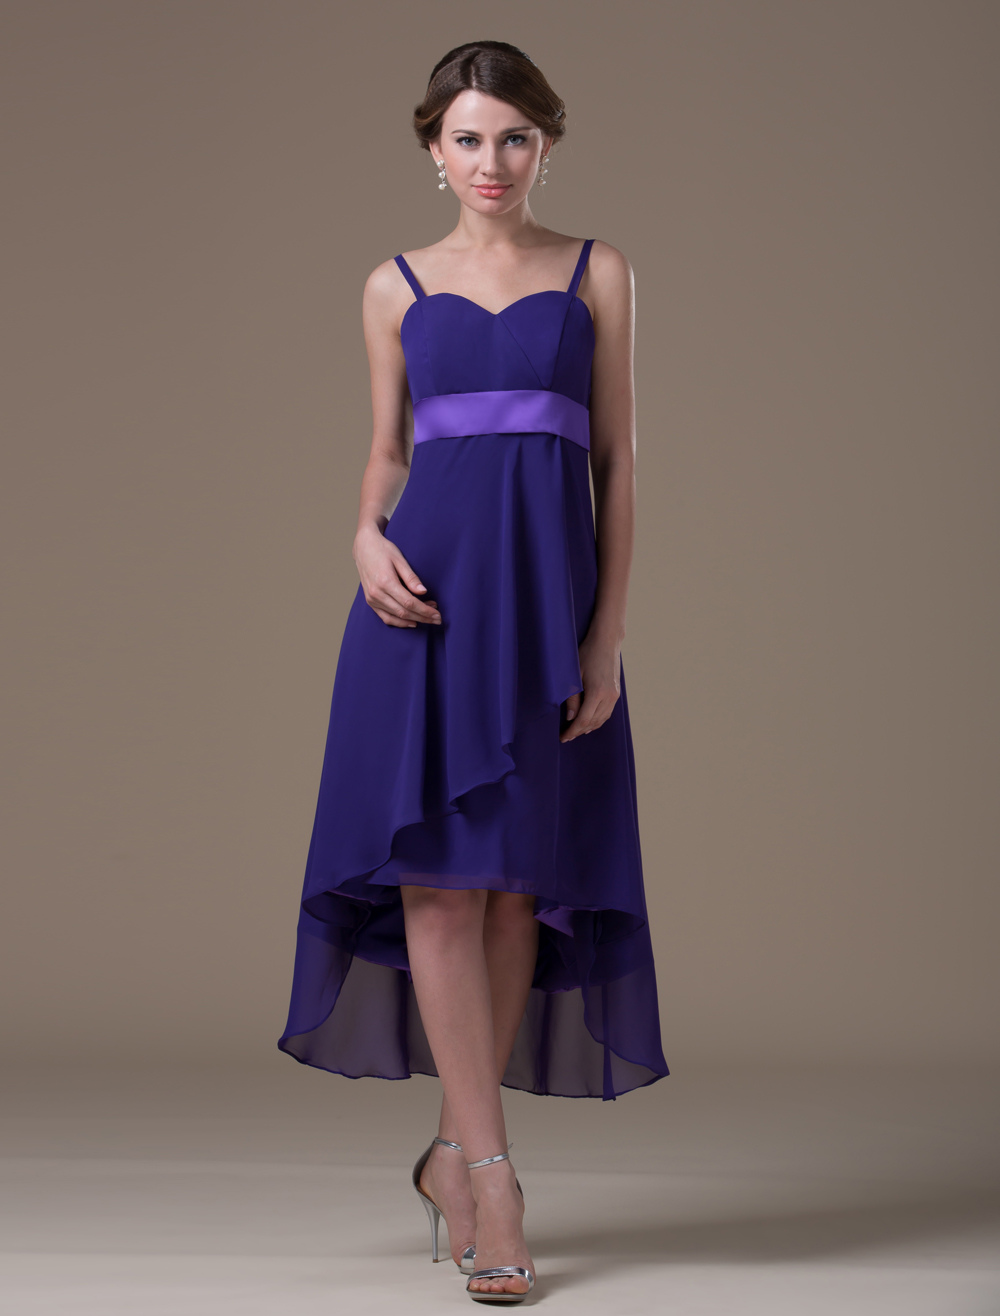 Grape Elastic Woven Satin Tea Length Maternity Bridesmaid Dress